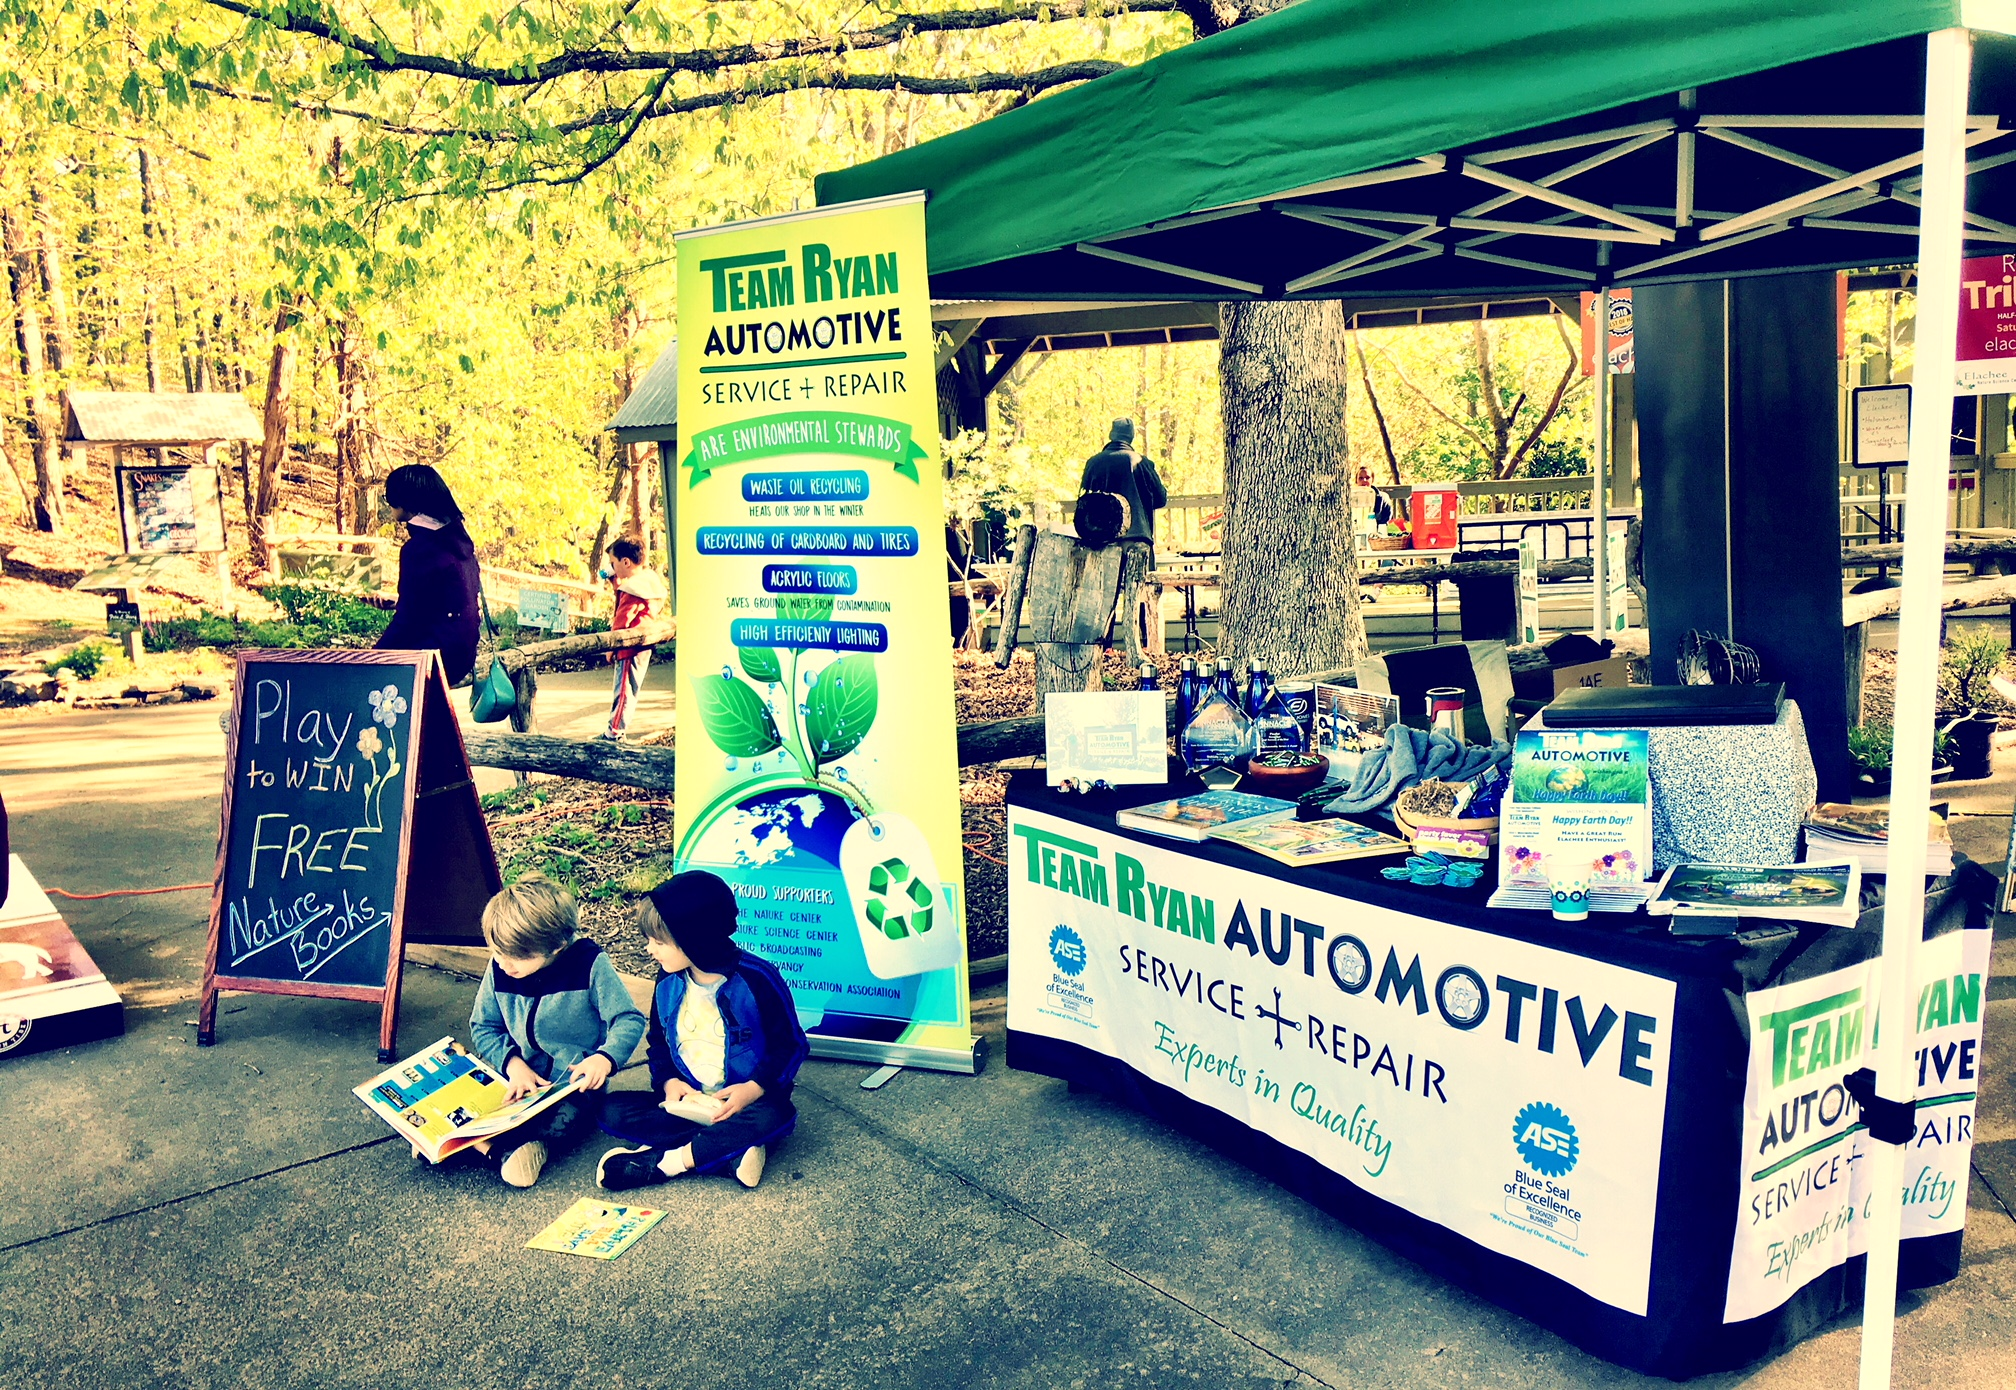 Team Ryan Automotive booth at Earth Day.jpg